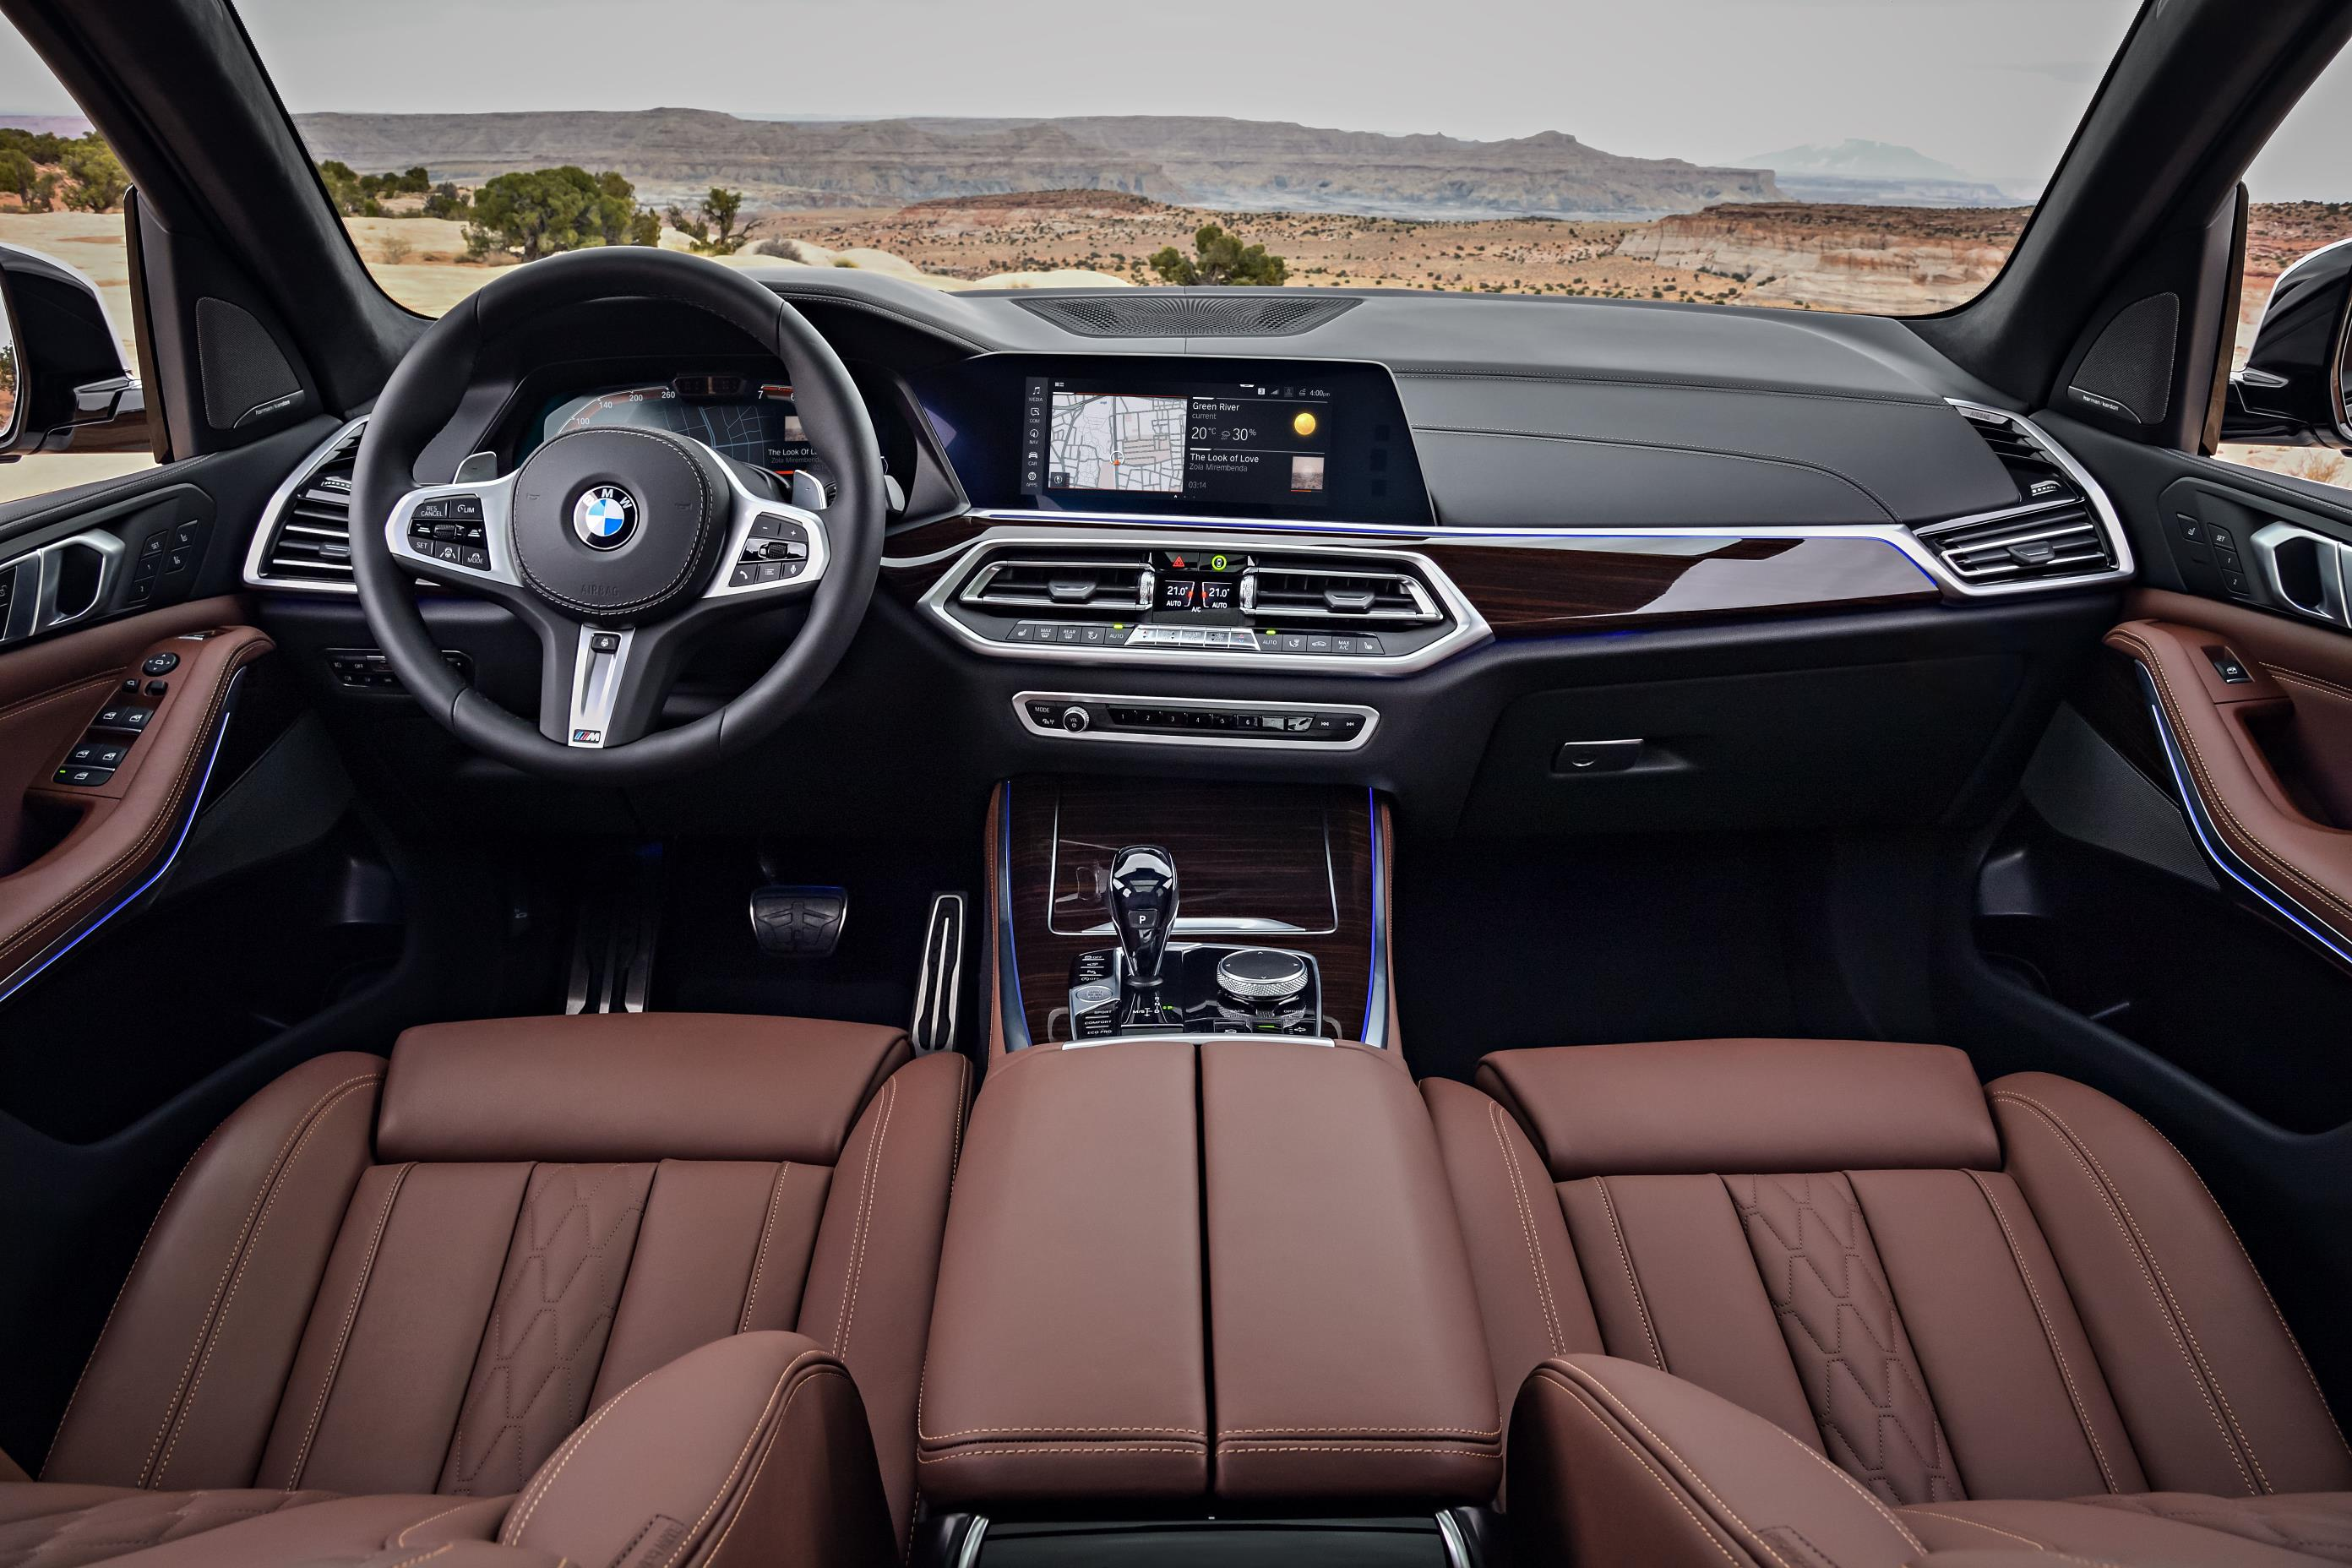 2019 Bmw X5 40i Xdrive New Look Features And Technology For This Premium Suv Asian Journal Canadian Online Newspapers